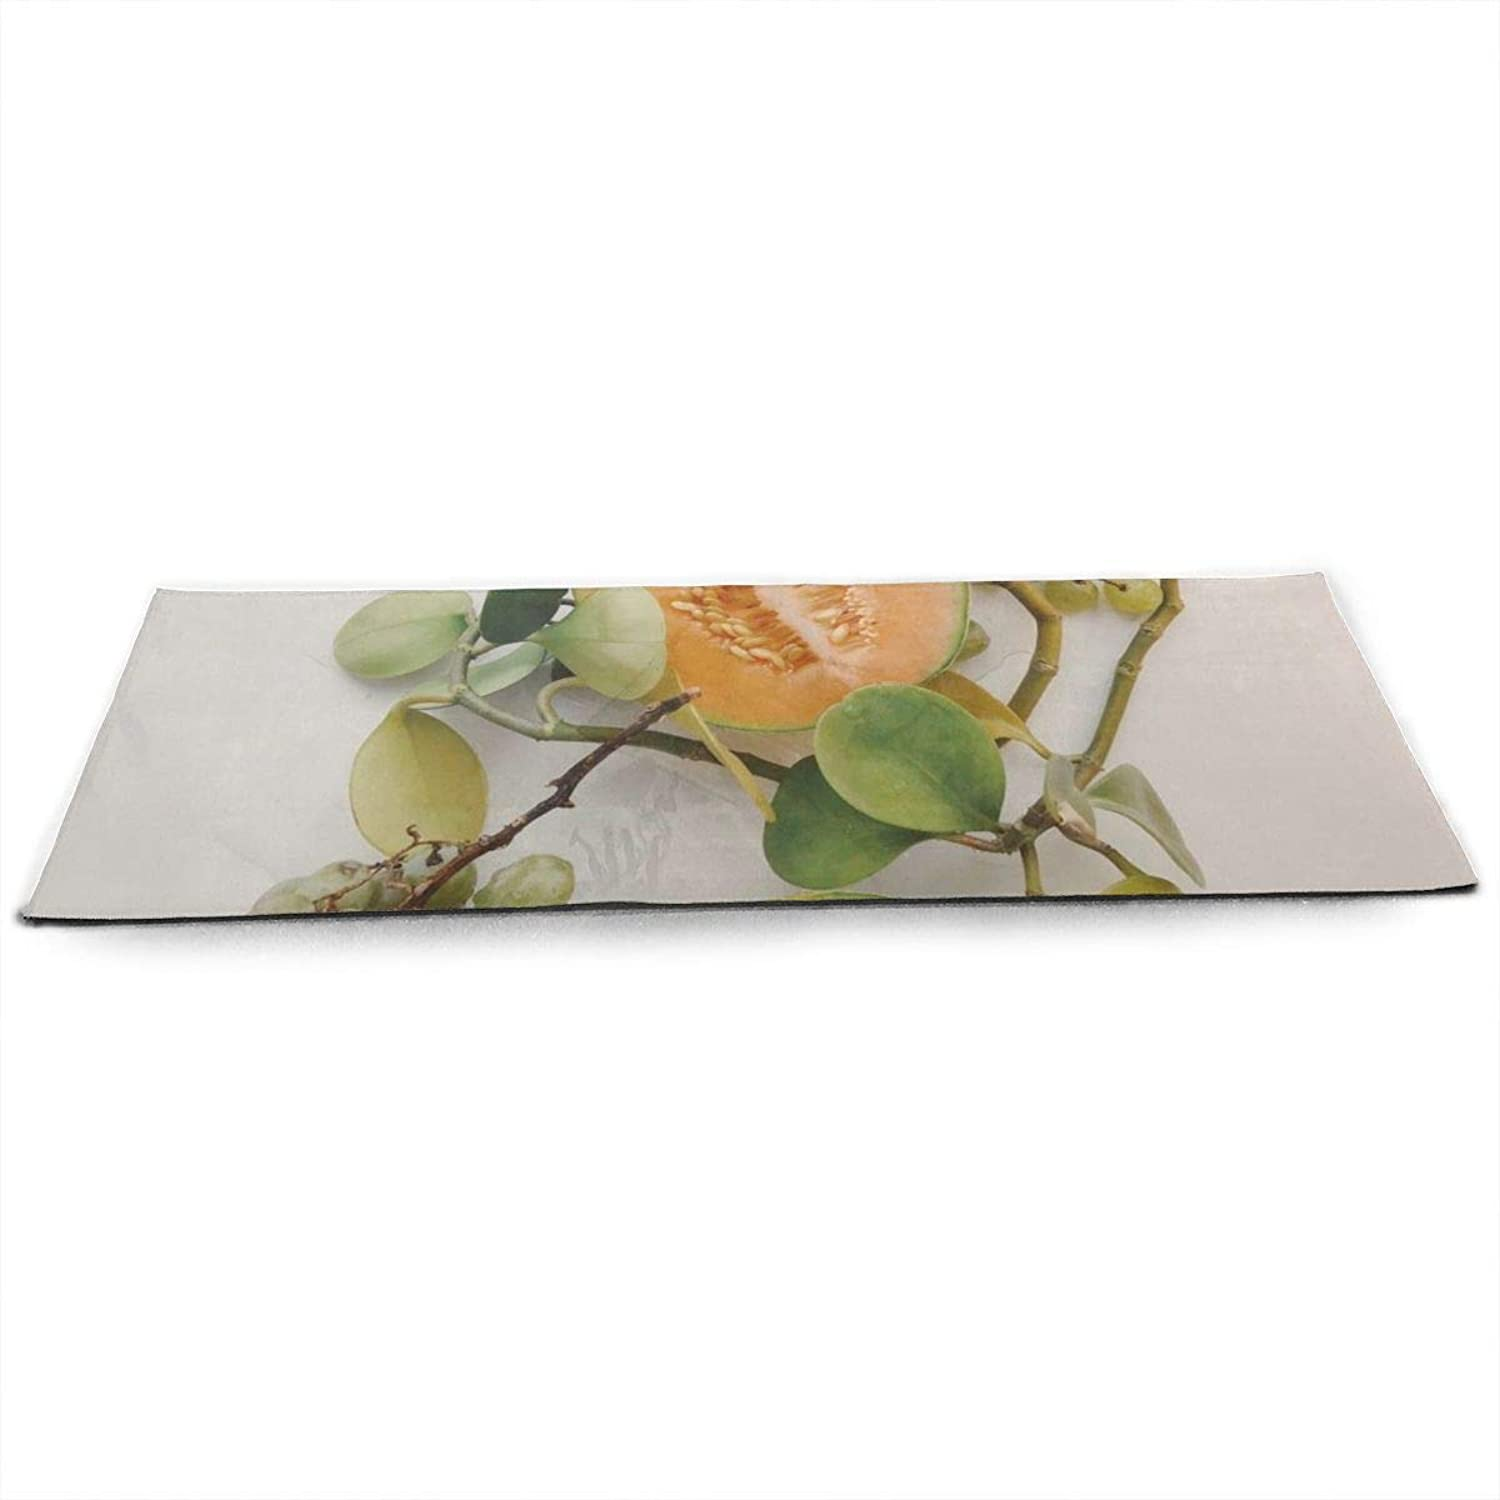 Whages Two Sliced Melons and Grapes NonSlip Soft Advanced Printed Environmental Yoga Mat 31.5   × 51.2